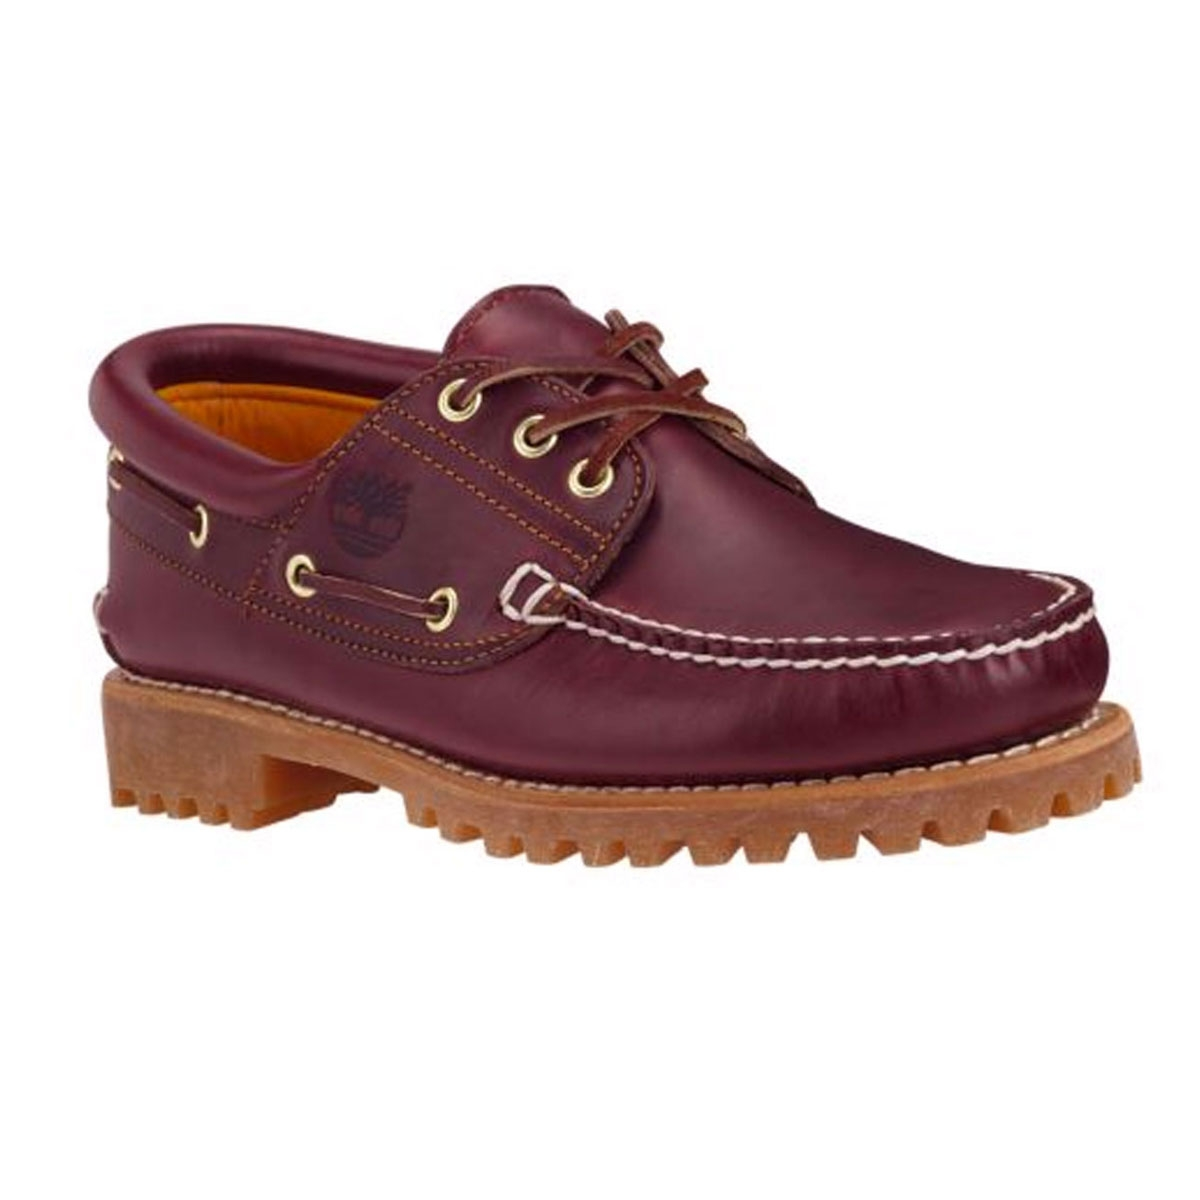 c45dcf3b9fec Image of Timberland Classic Authentic 3 Eye Boat Shoe (Men s) - Burgundy